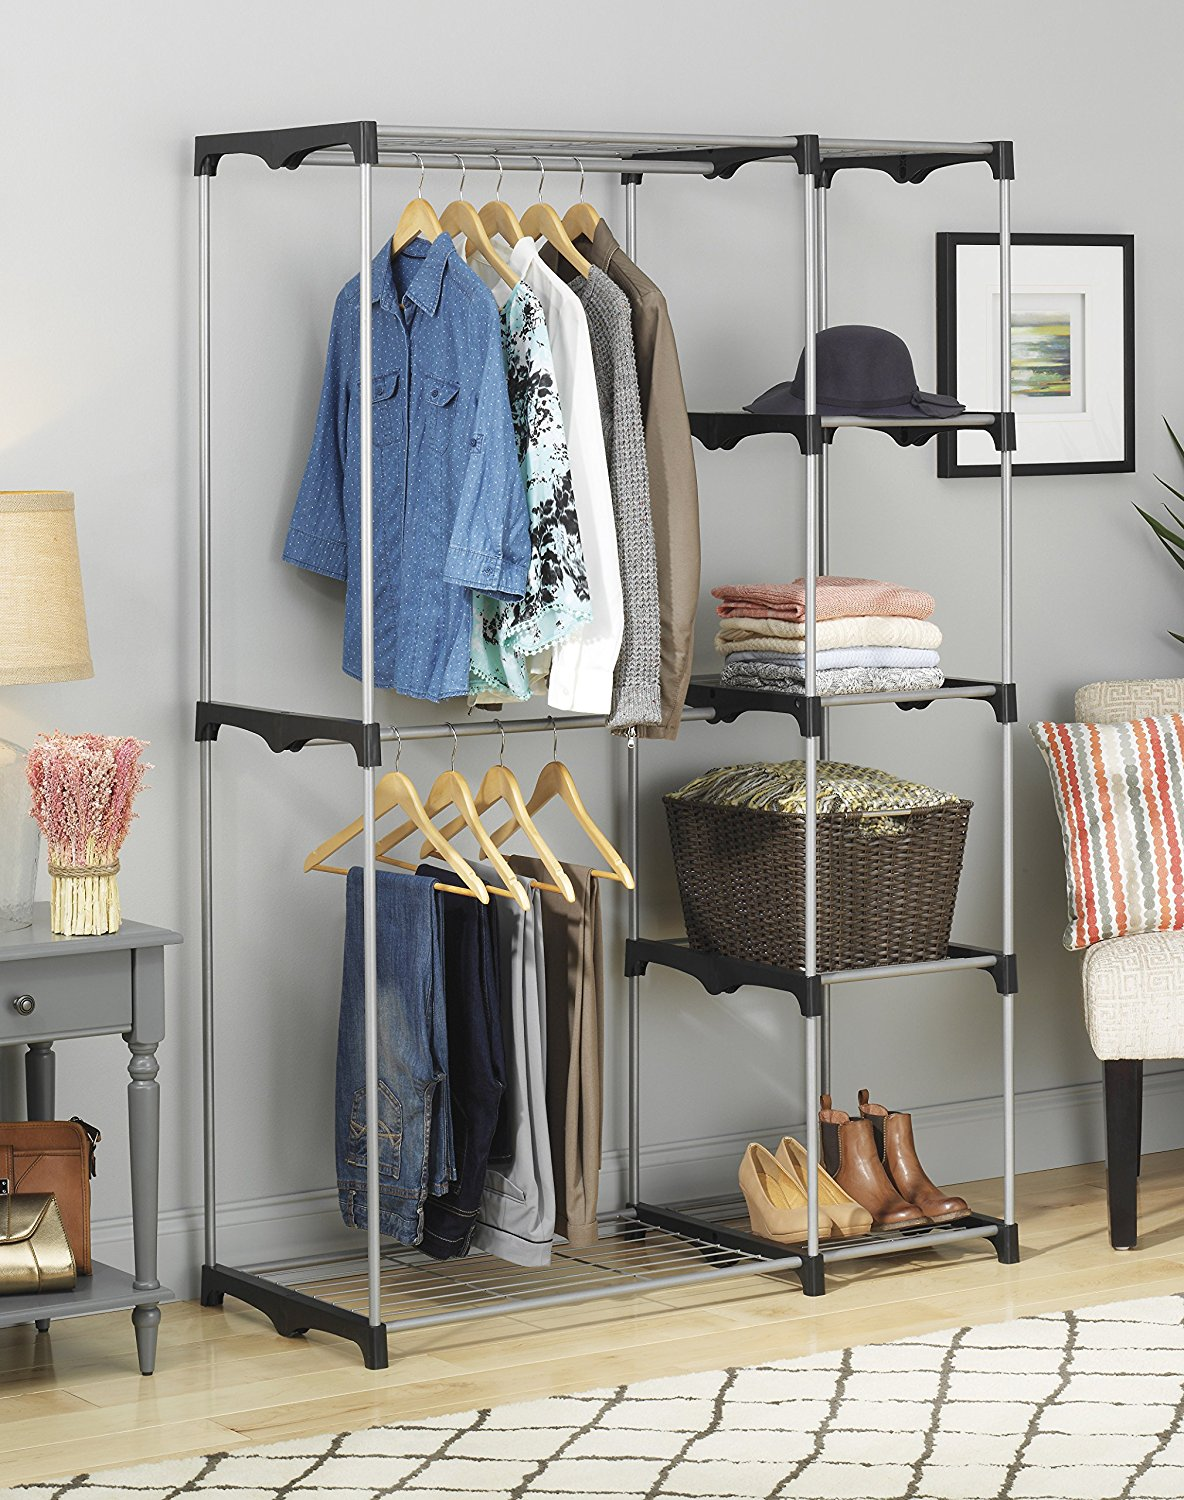 High Quality Double Rod Freestanding Closet, Silver/Black Image 4 Of 4